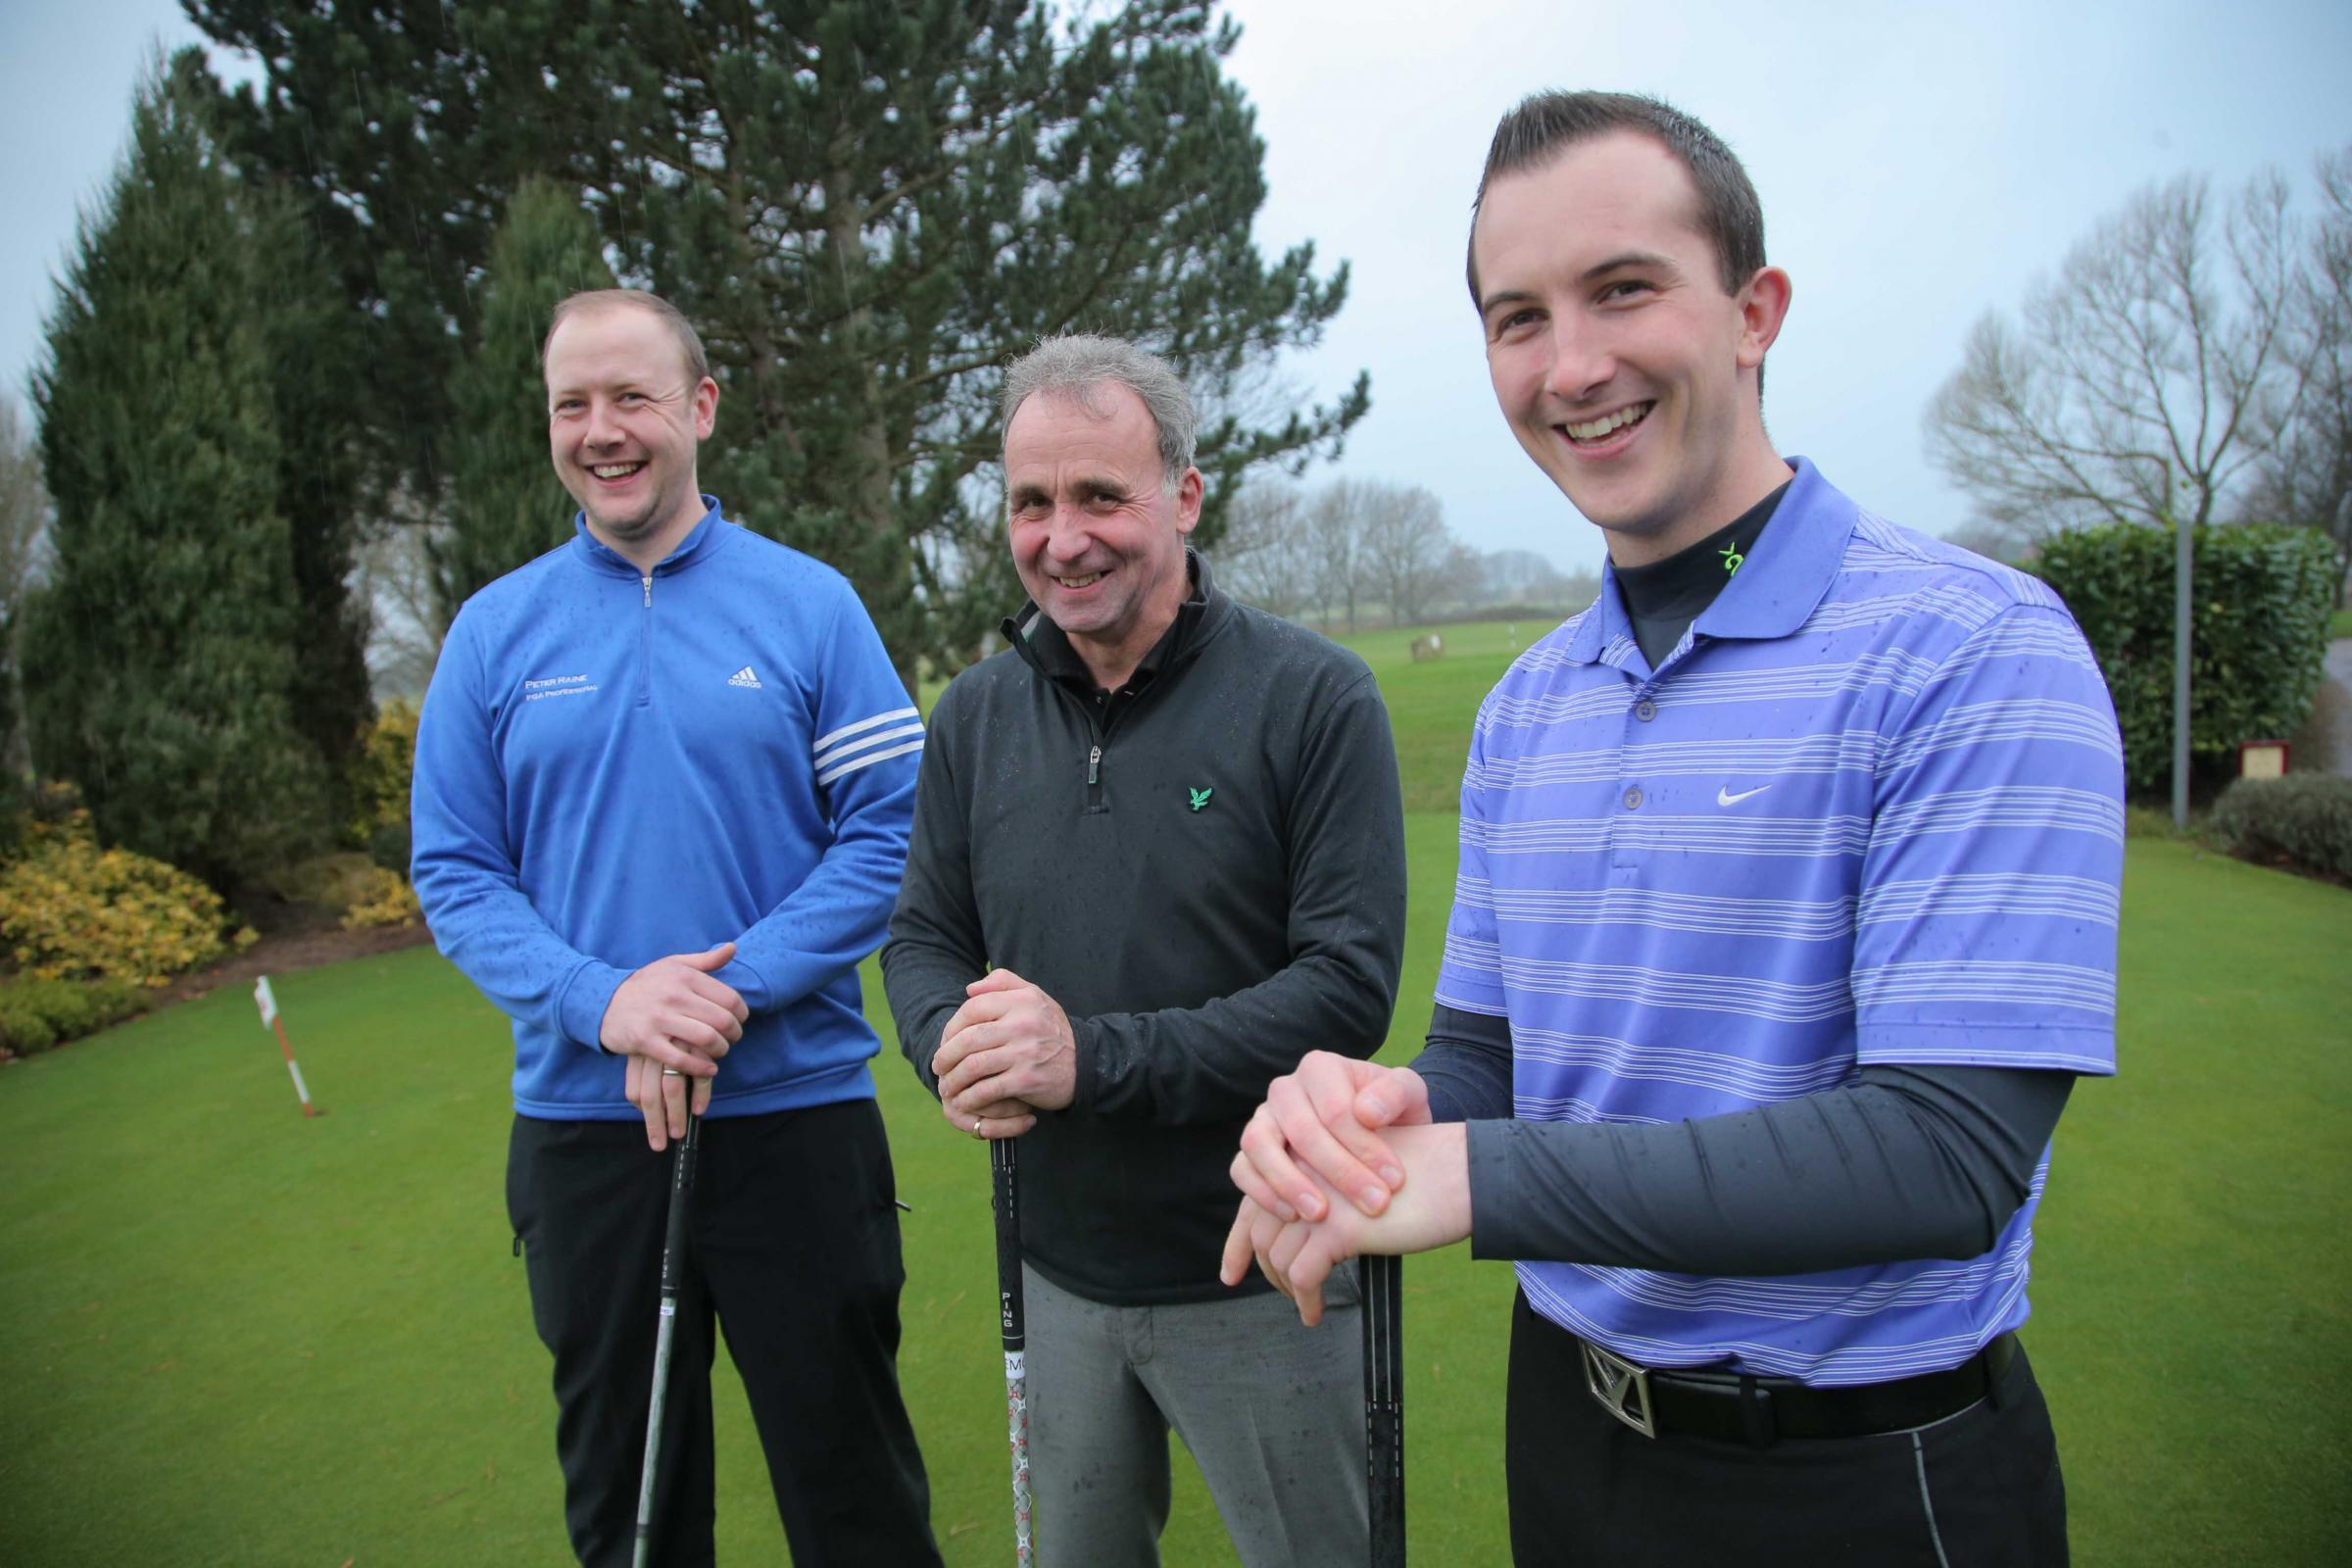 AIMING HIGH: Golf pros at Blackwell, left to right, Peter Raine, Ralph Givens and Ross Jackson